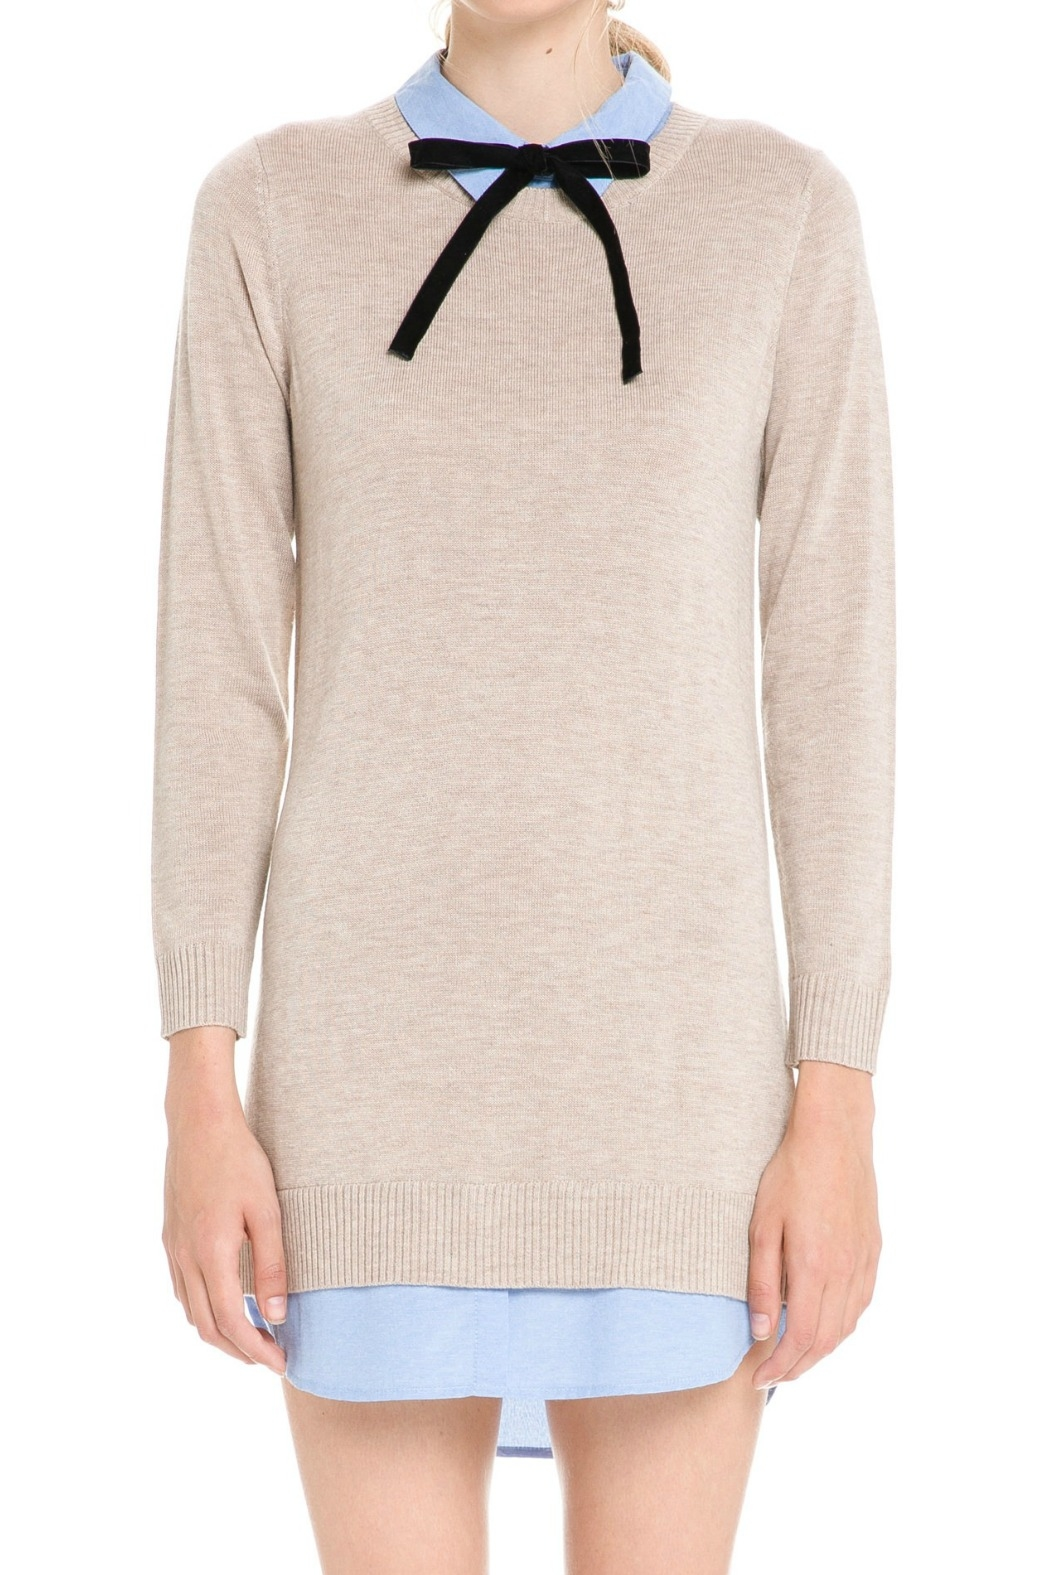 English Factory Bow Detail Sweater Dress - Back Cropped Image